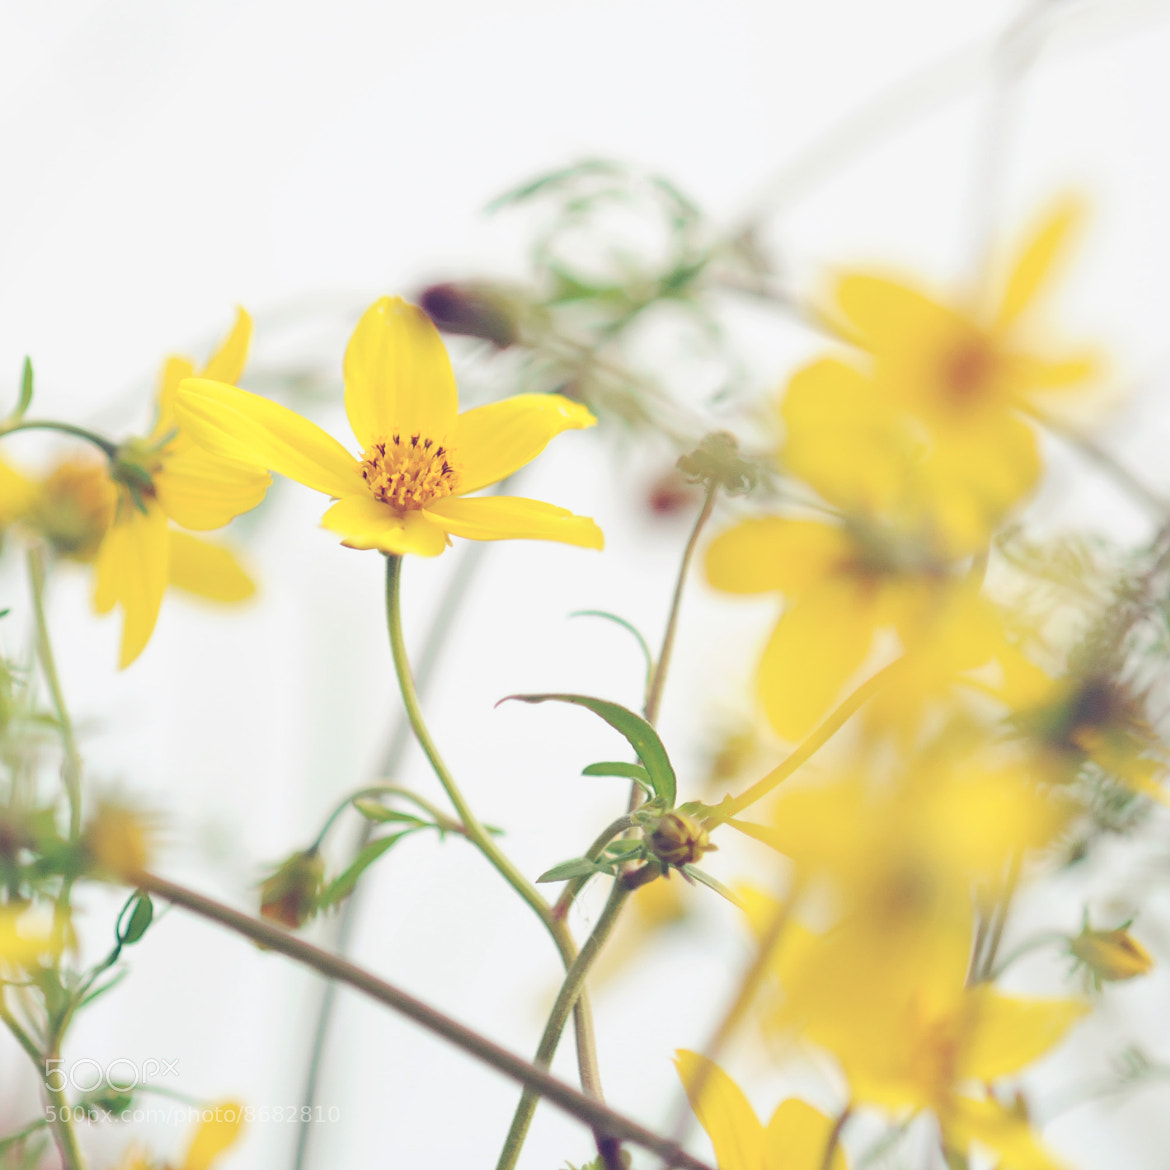 Photograph dreamy yellow flowers by Shilpa Shenoy on 500px